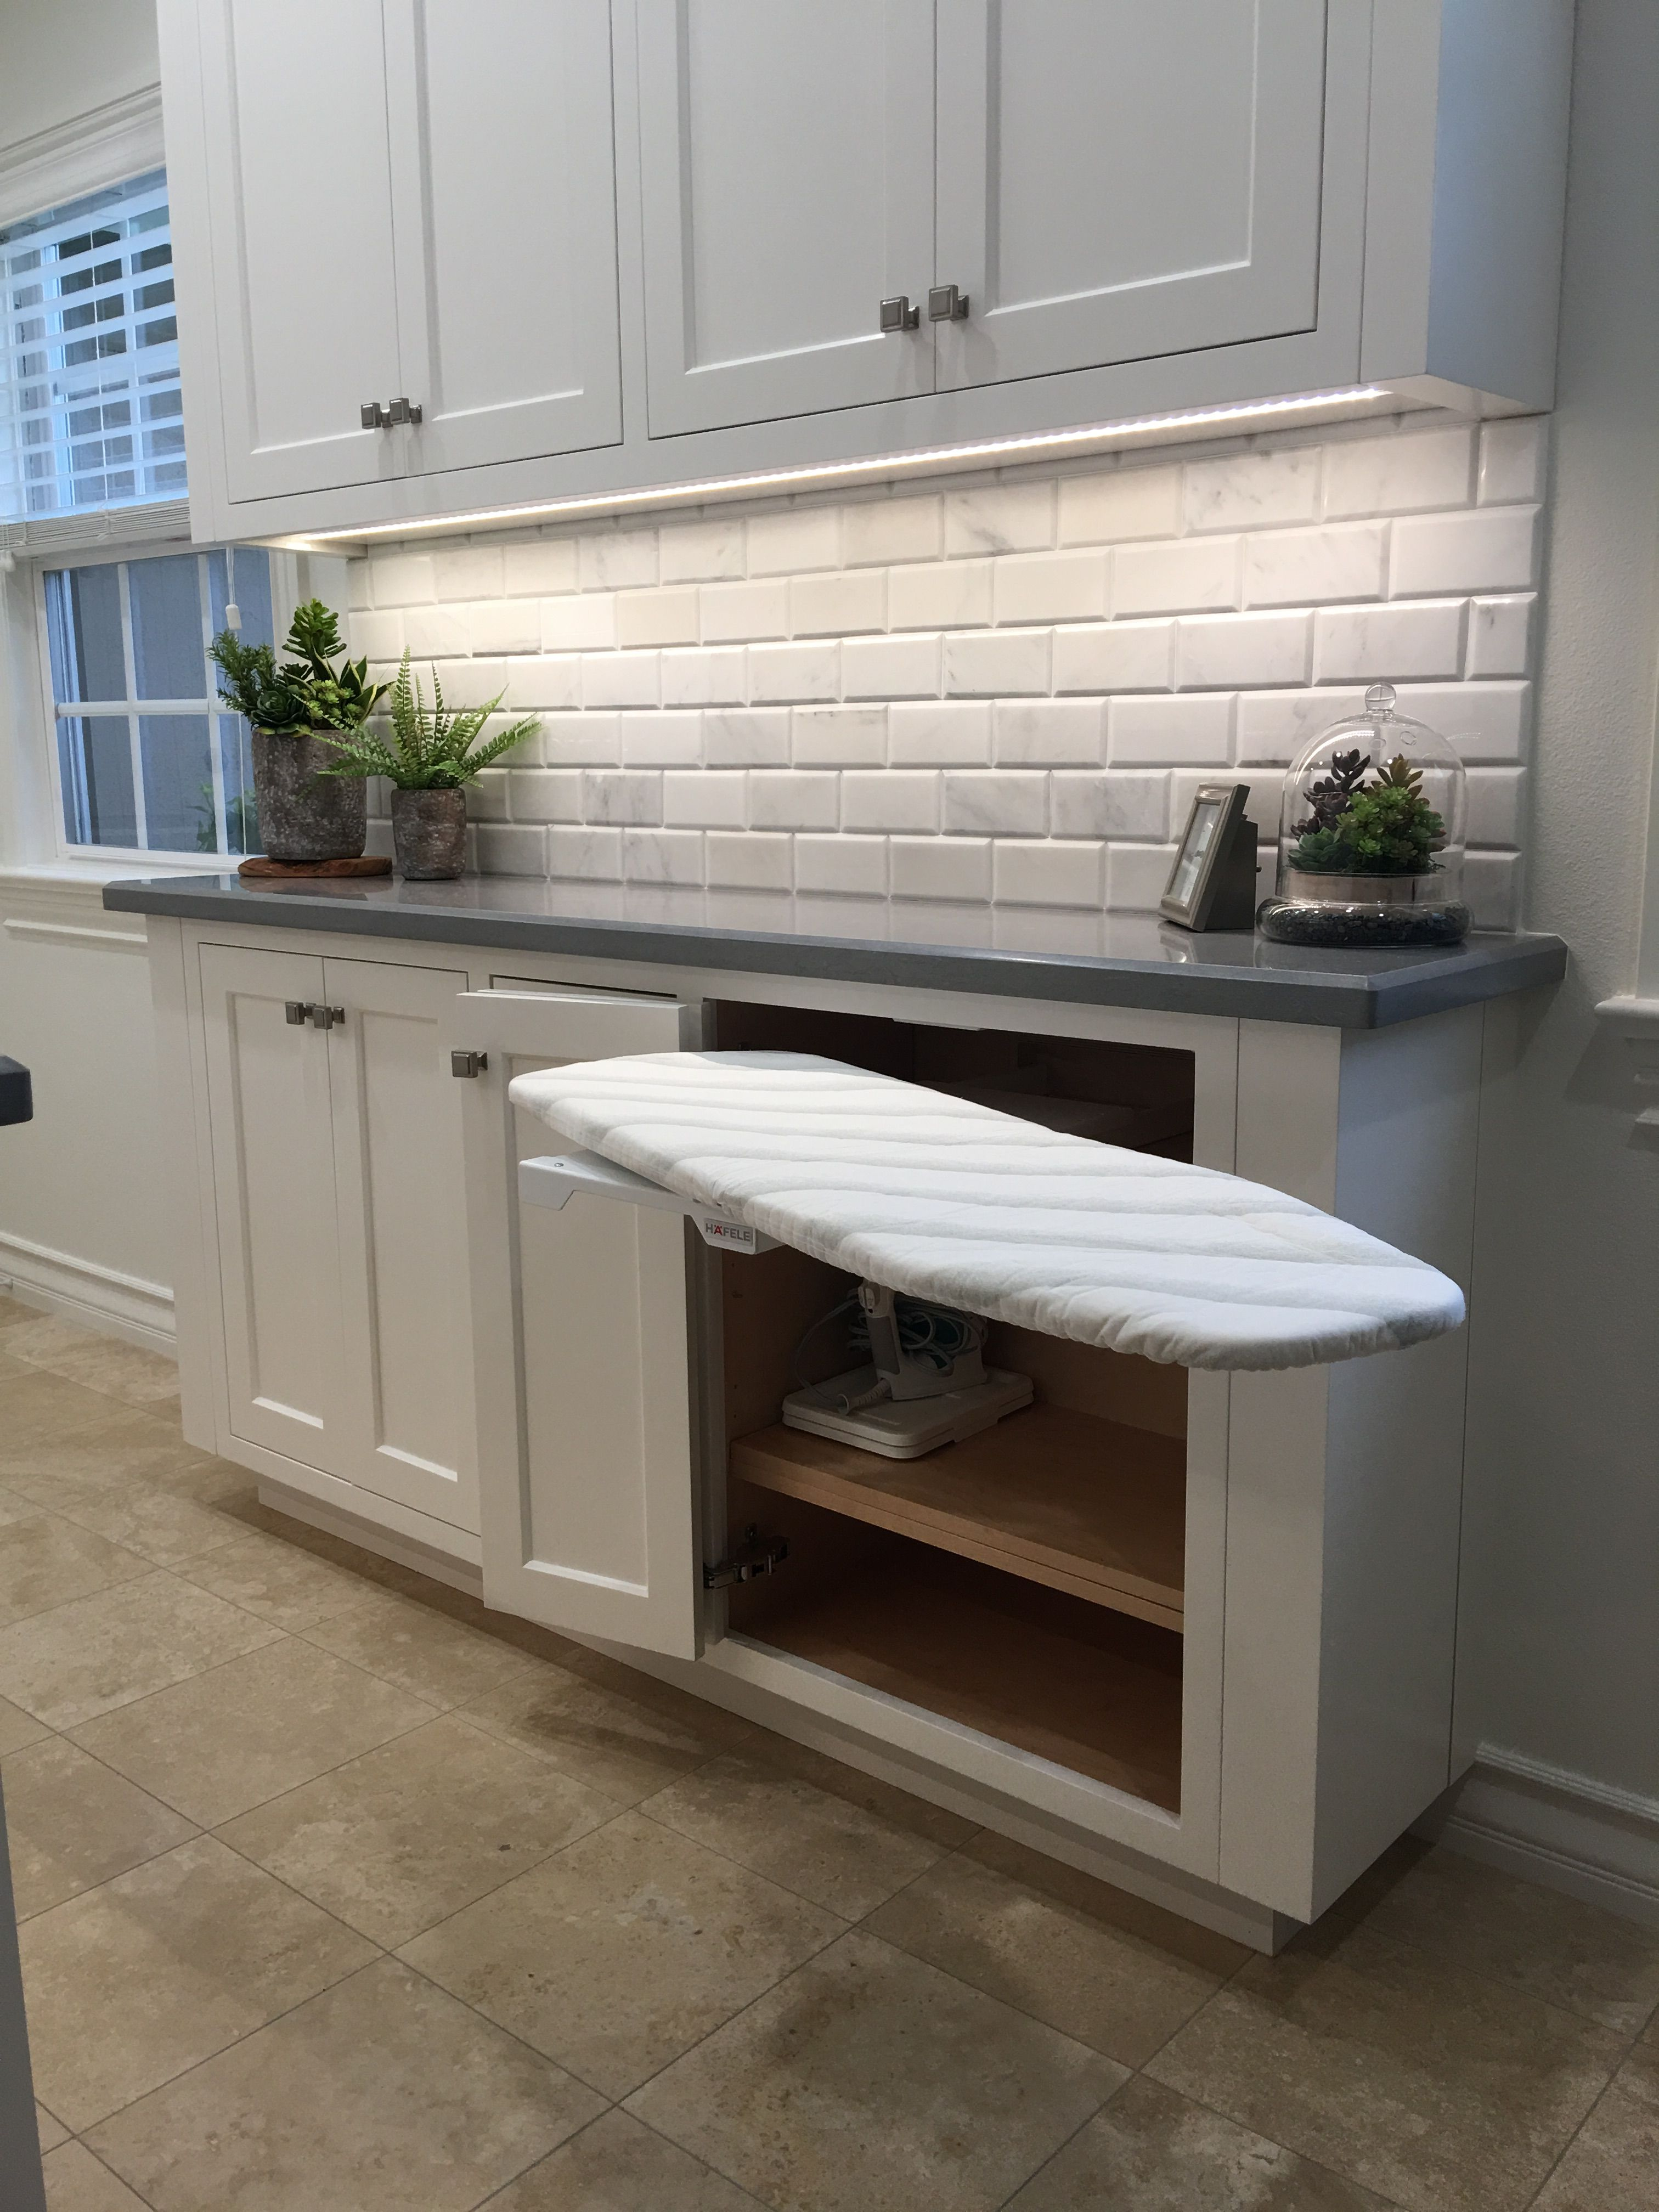 Laundry Room Butler S Pantry Ironing Board That Folds In Half And